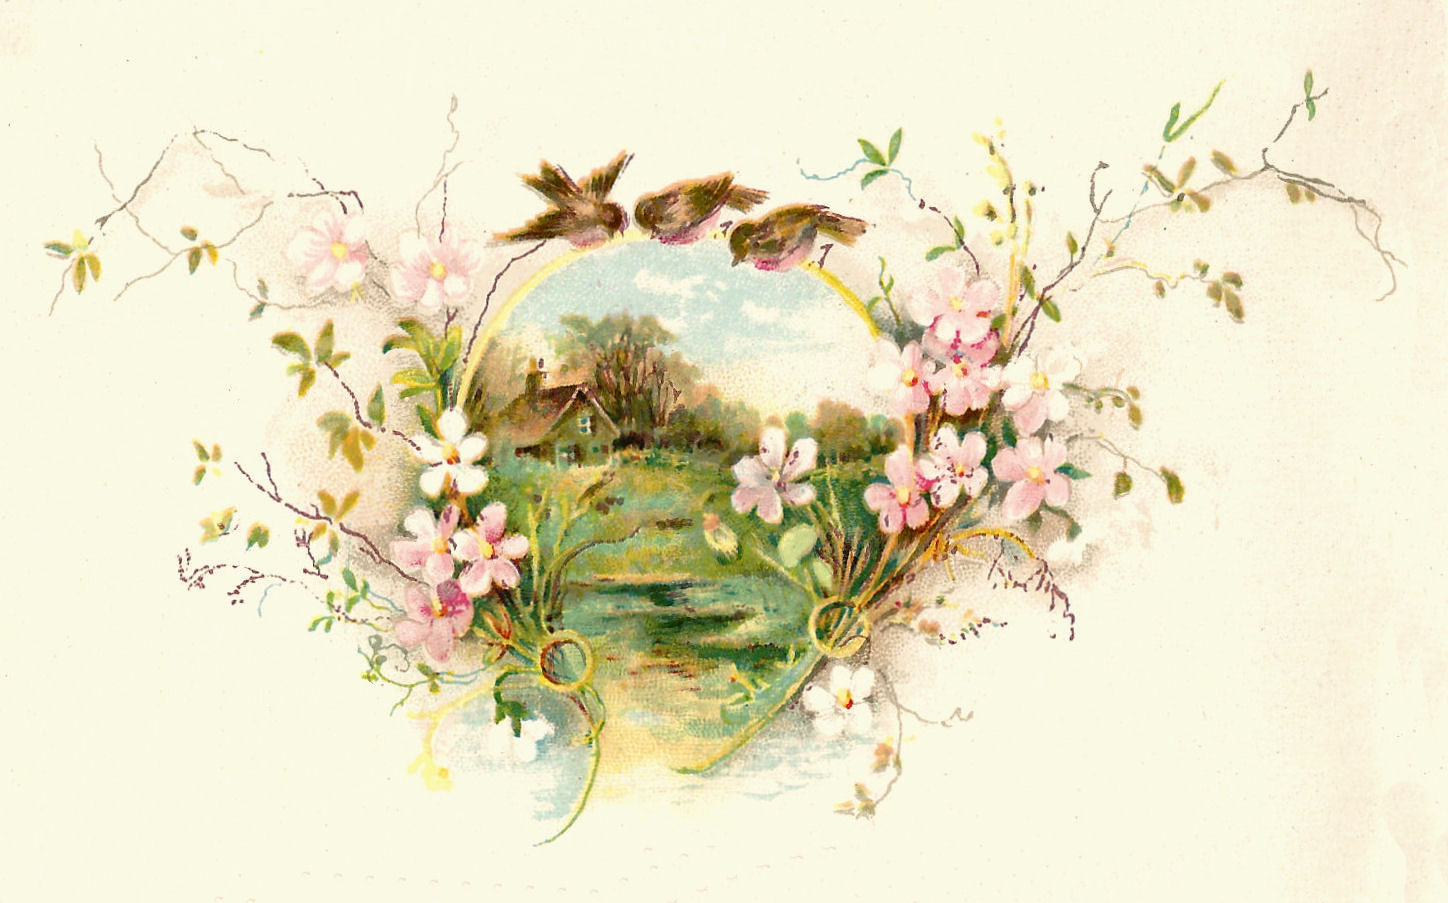 Graghic: Free Vintage Bird Graphic: 3 Birds on a Flower Frame Clip Art